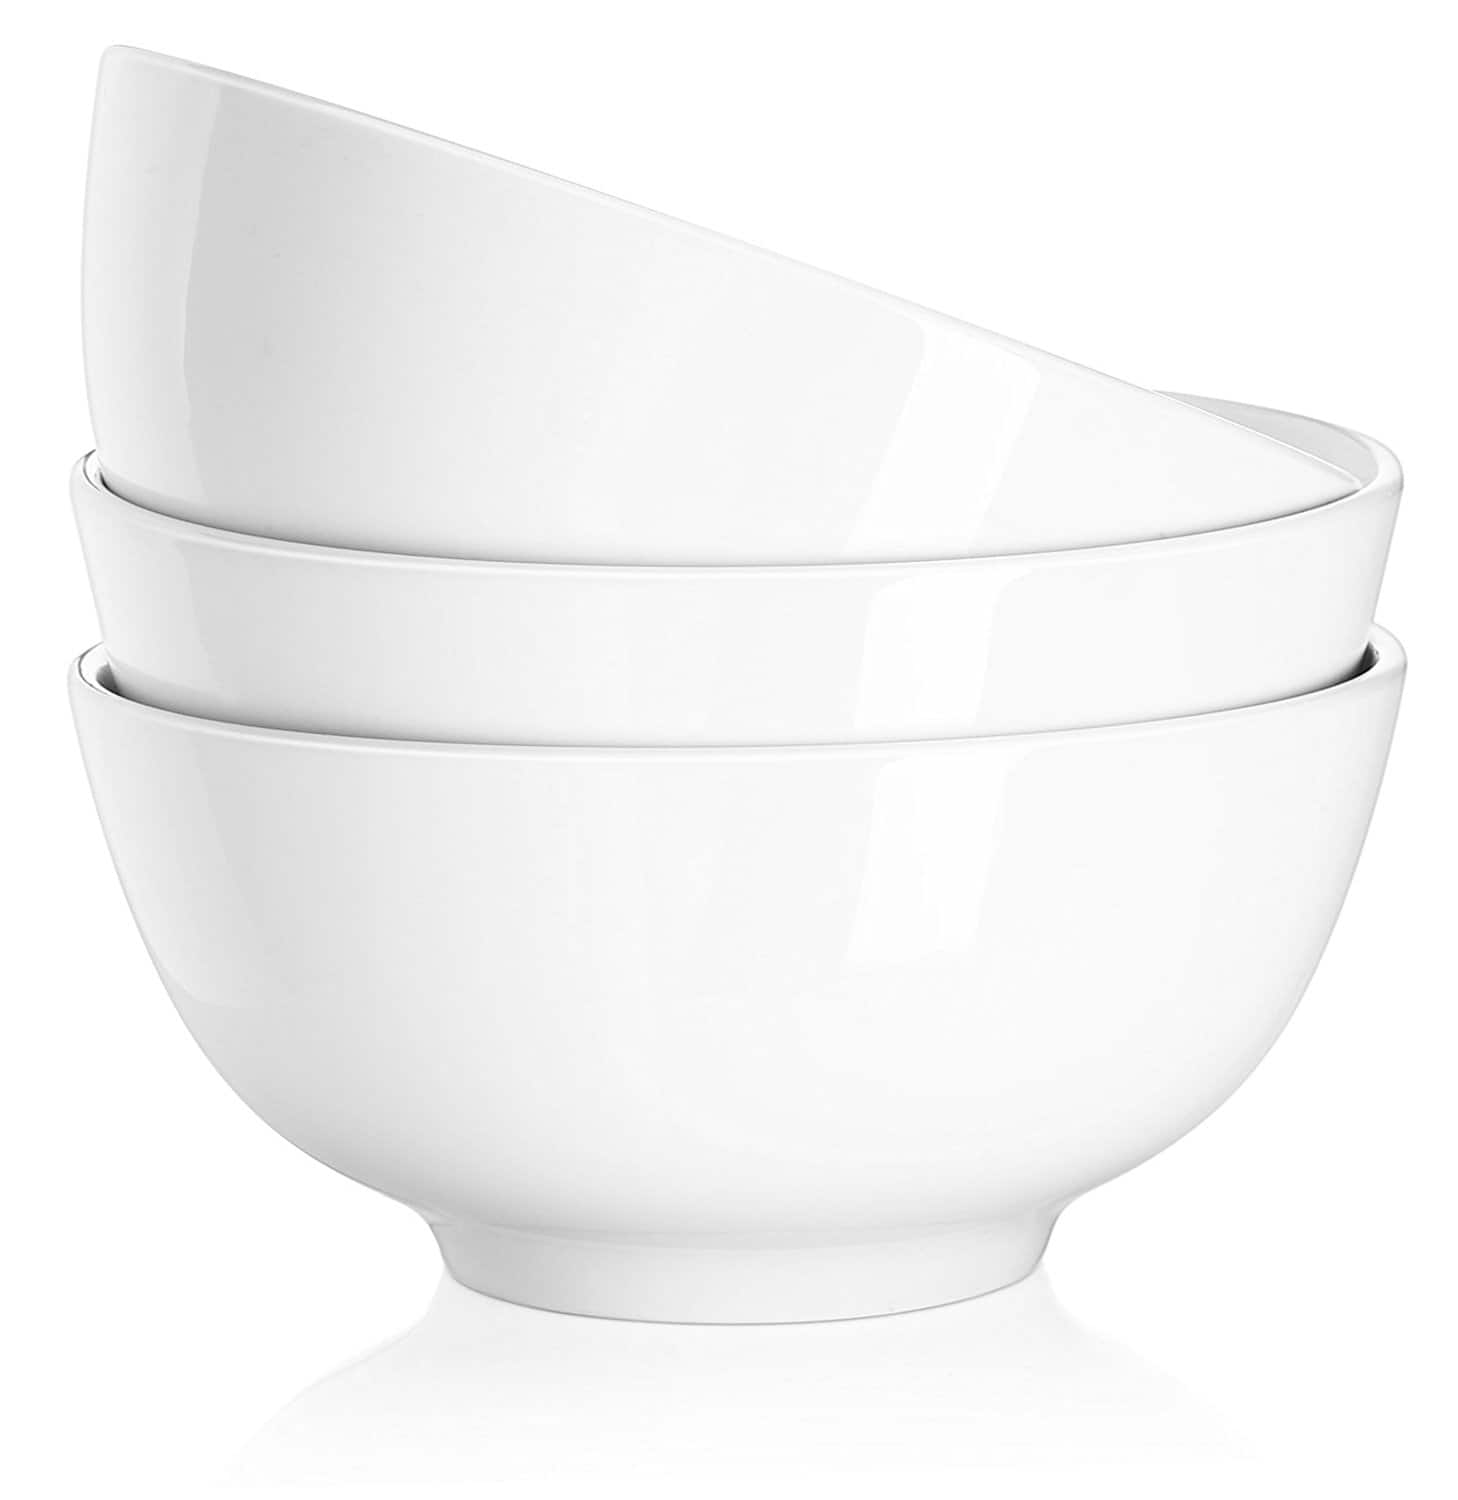 50%OFF on DOWAN 29 Ounce Porcelain Soup Bowls - 3 Packs, Stackable Round, White $11.49